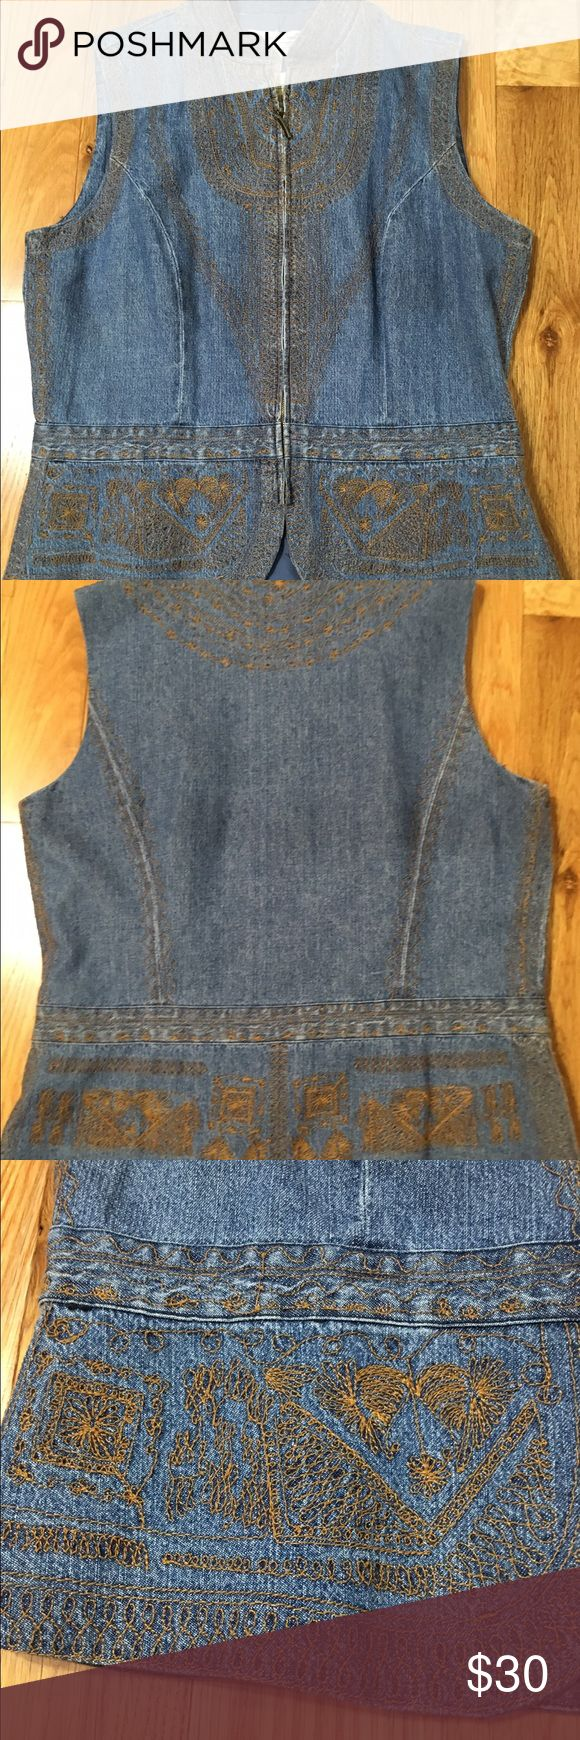 "Coldwater Creek Denim Vest This is a NWT Coldwater Creek ""Elegence"" Denim Vest .  This is a beautiful vest with detailed embroidery . Coldwater Creek Jackets & Coats Vests"